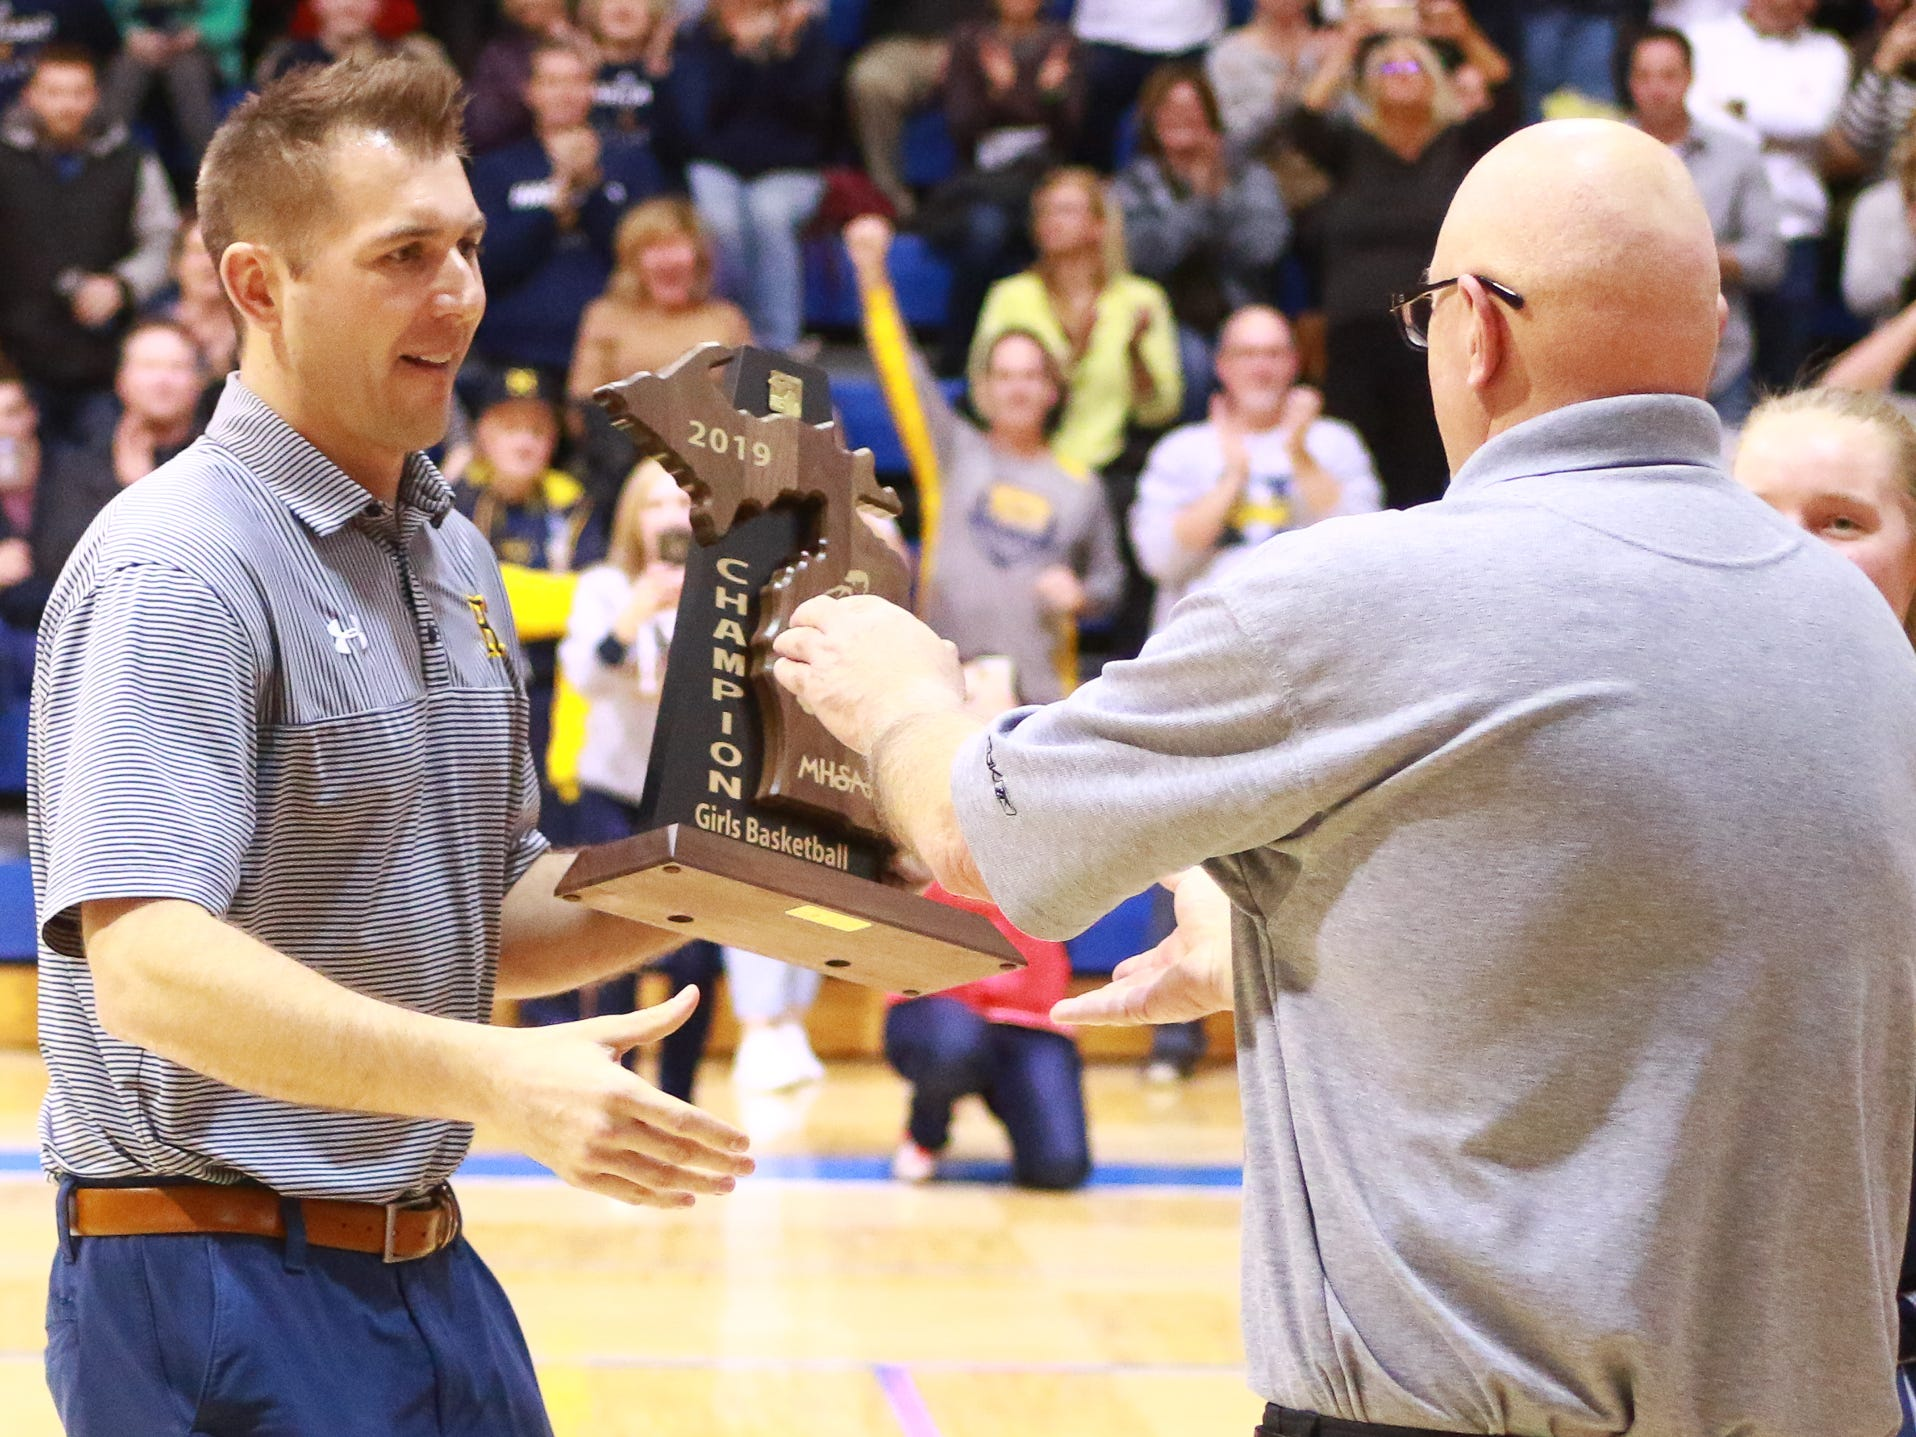 Hartland coach Don Palmer (right) accepts the regional championship trophy from Hartland athletic director JD Wheeler following a 50-46 victory over Walled Lake Western at Lakeland on Wednesday, March 13, 2019.